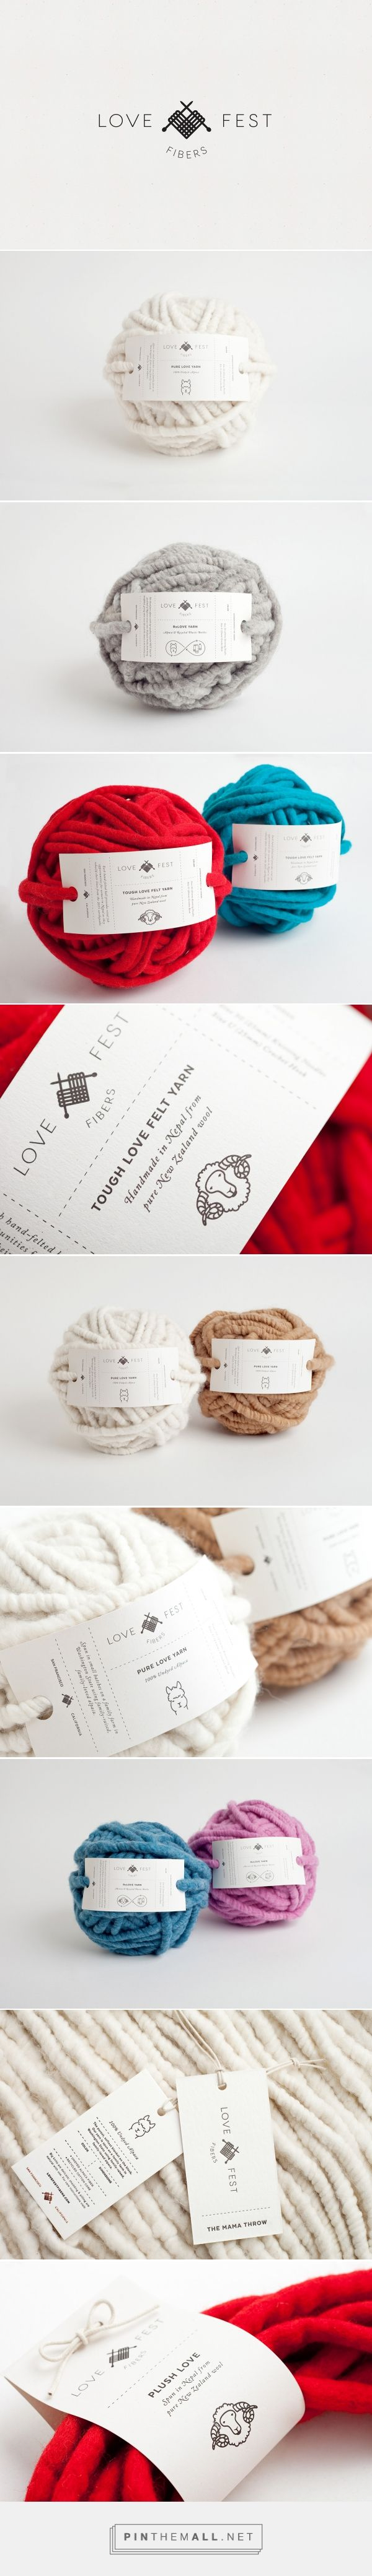 #packaging #design #branding #love #fest #fibers #cool #white